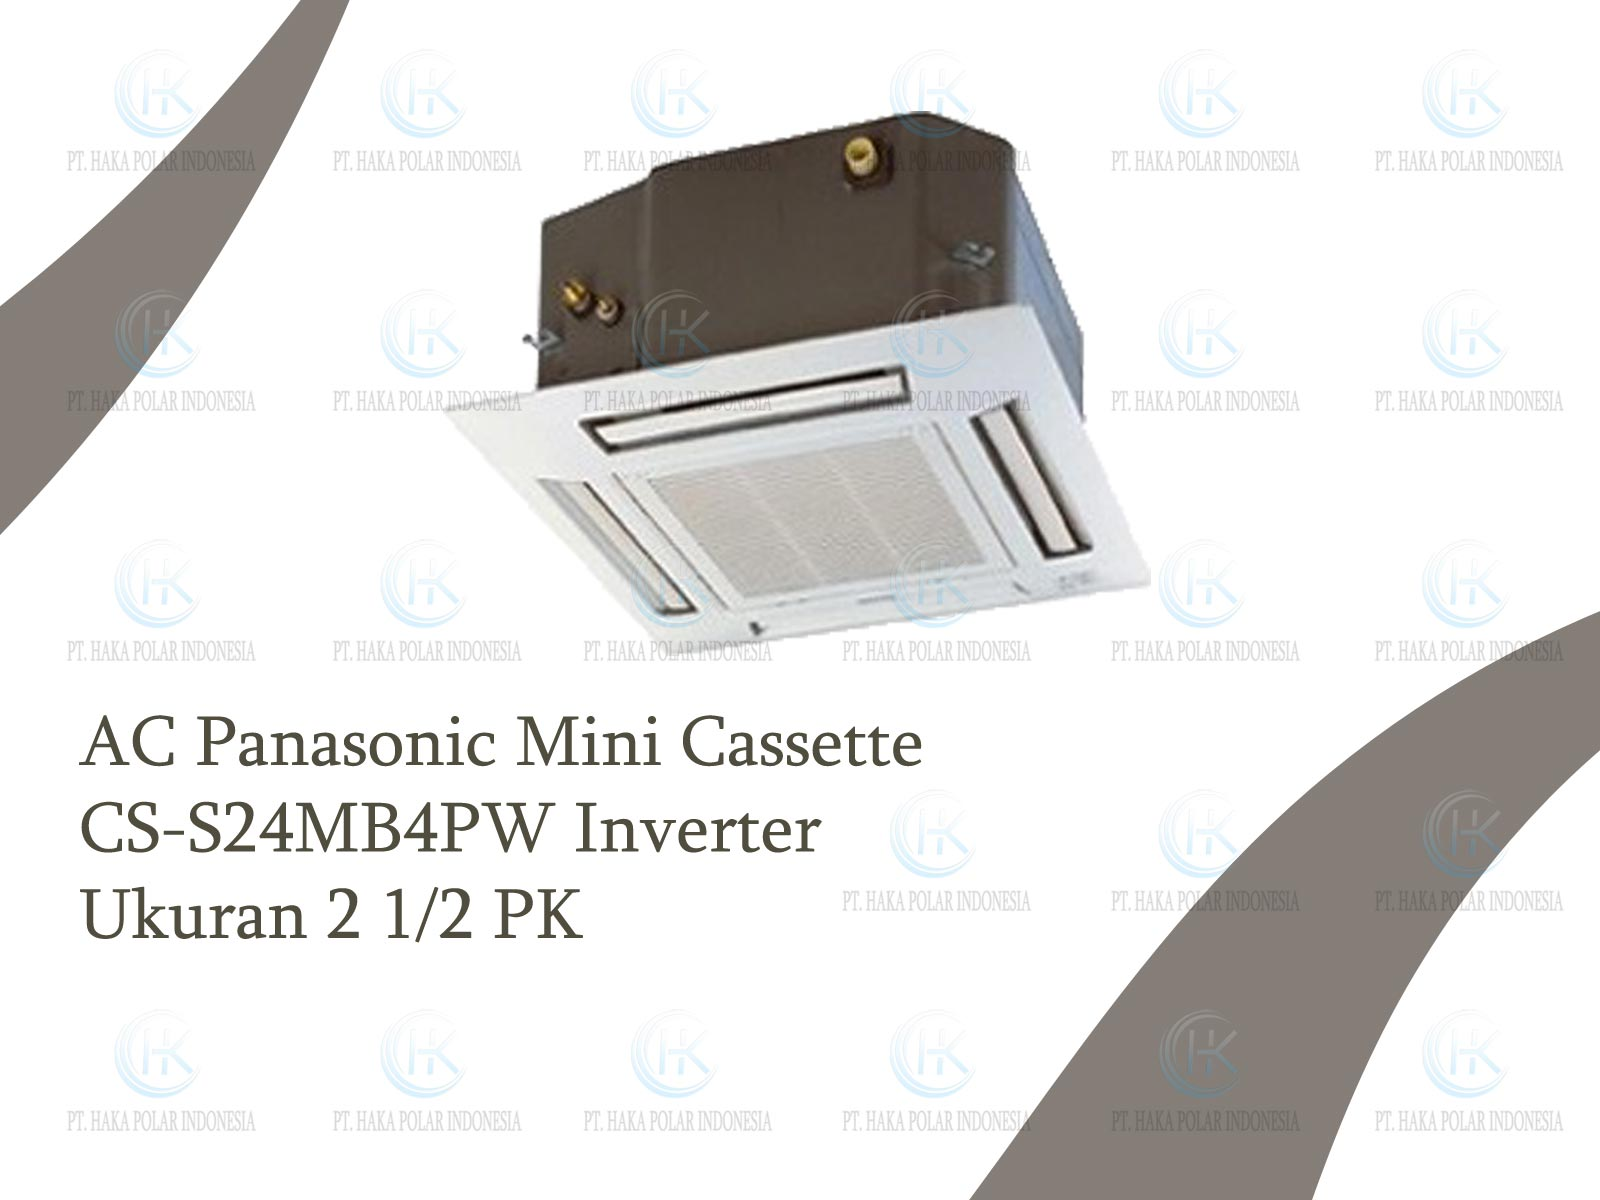 Jual AC Panasonic CS-S24MB4PW 2 1/2 PK Mini Cassette Inverter R410a